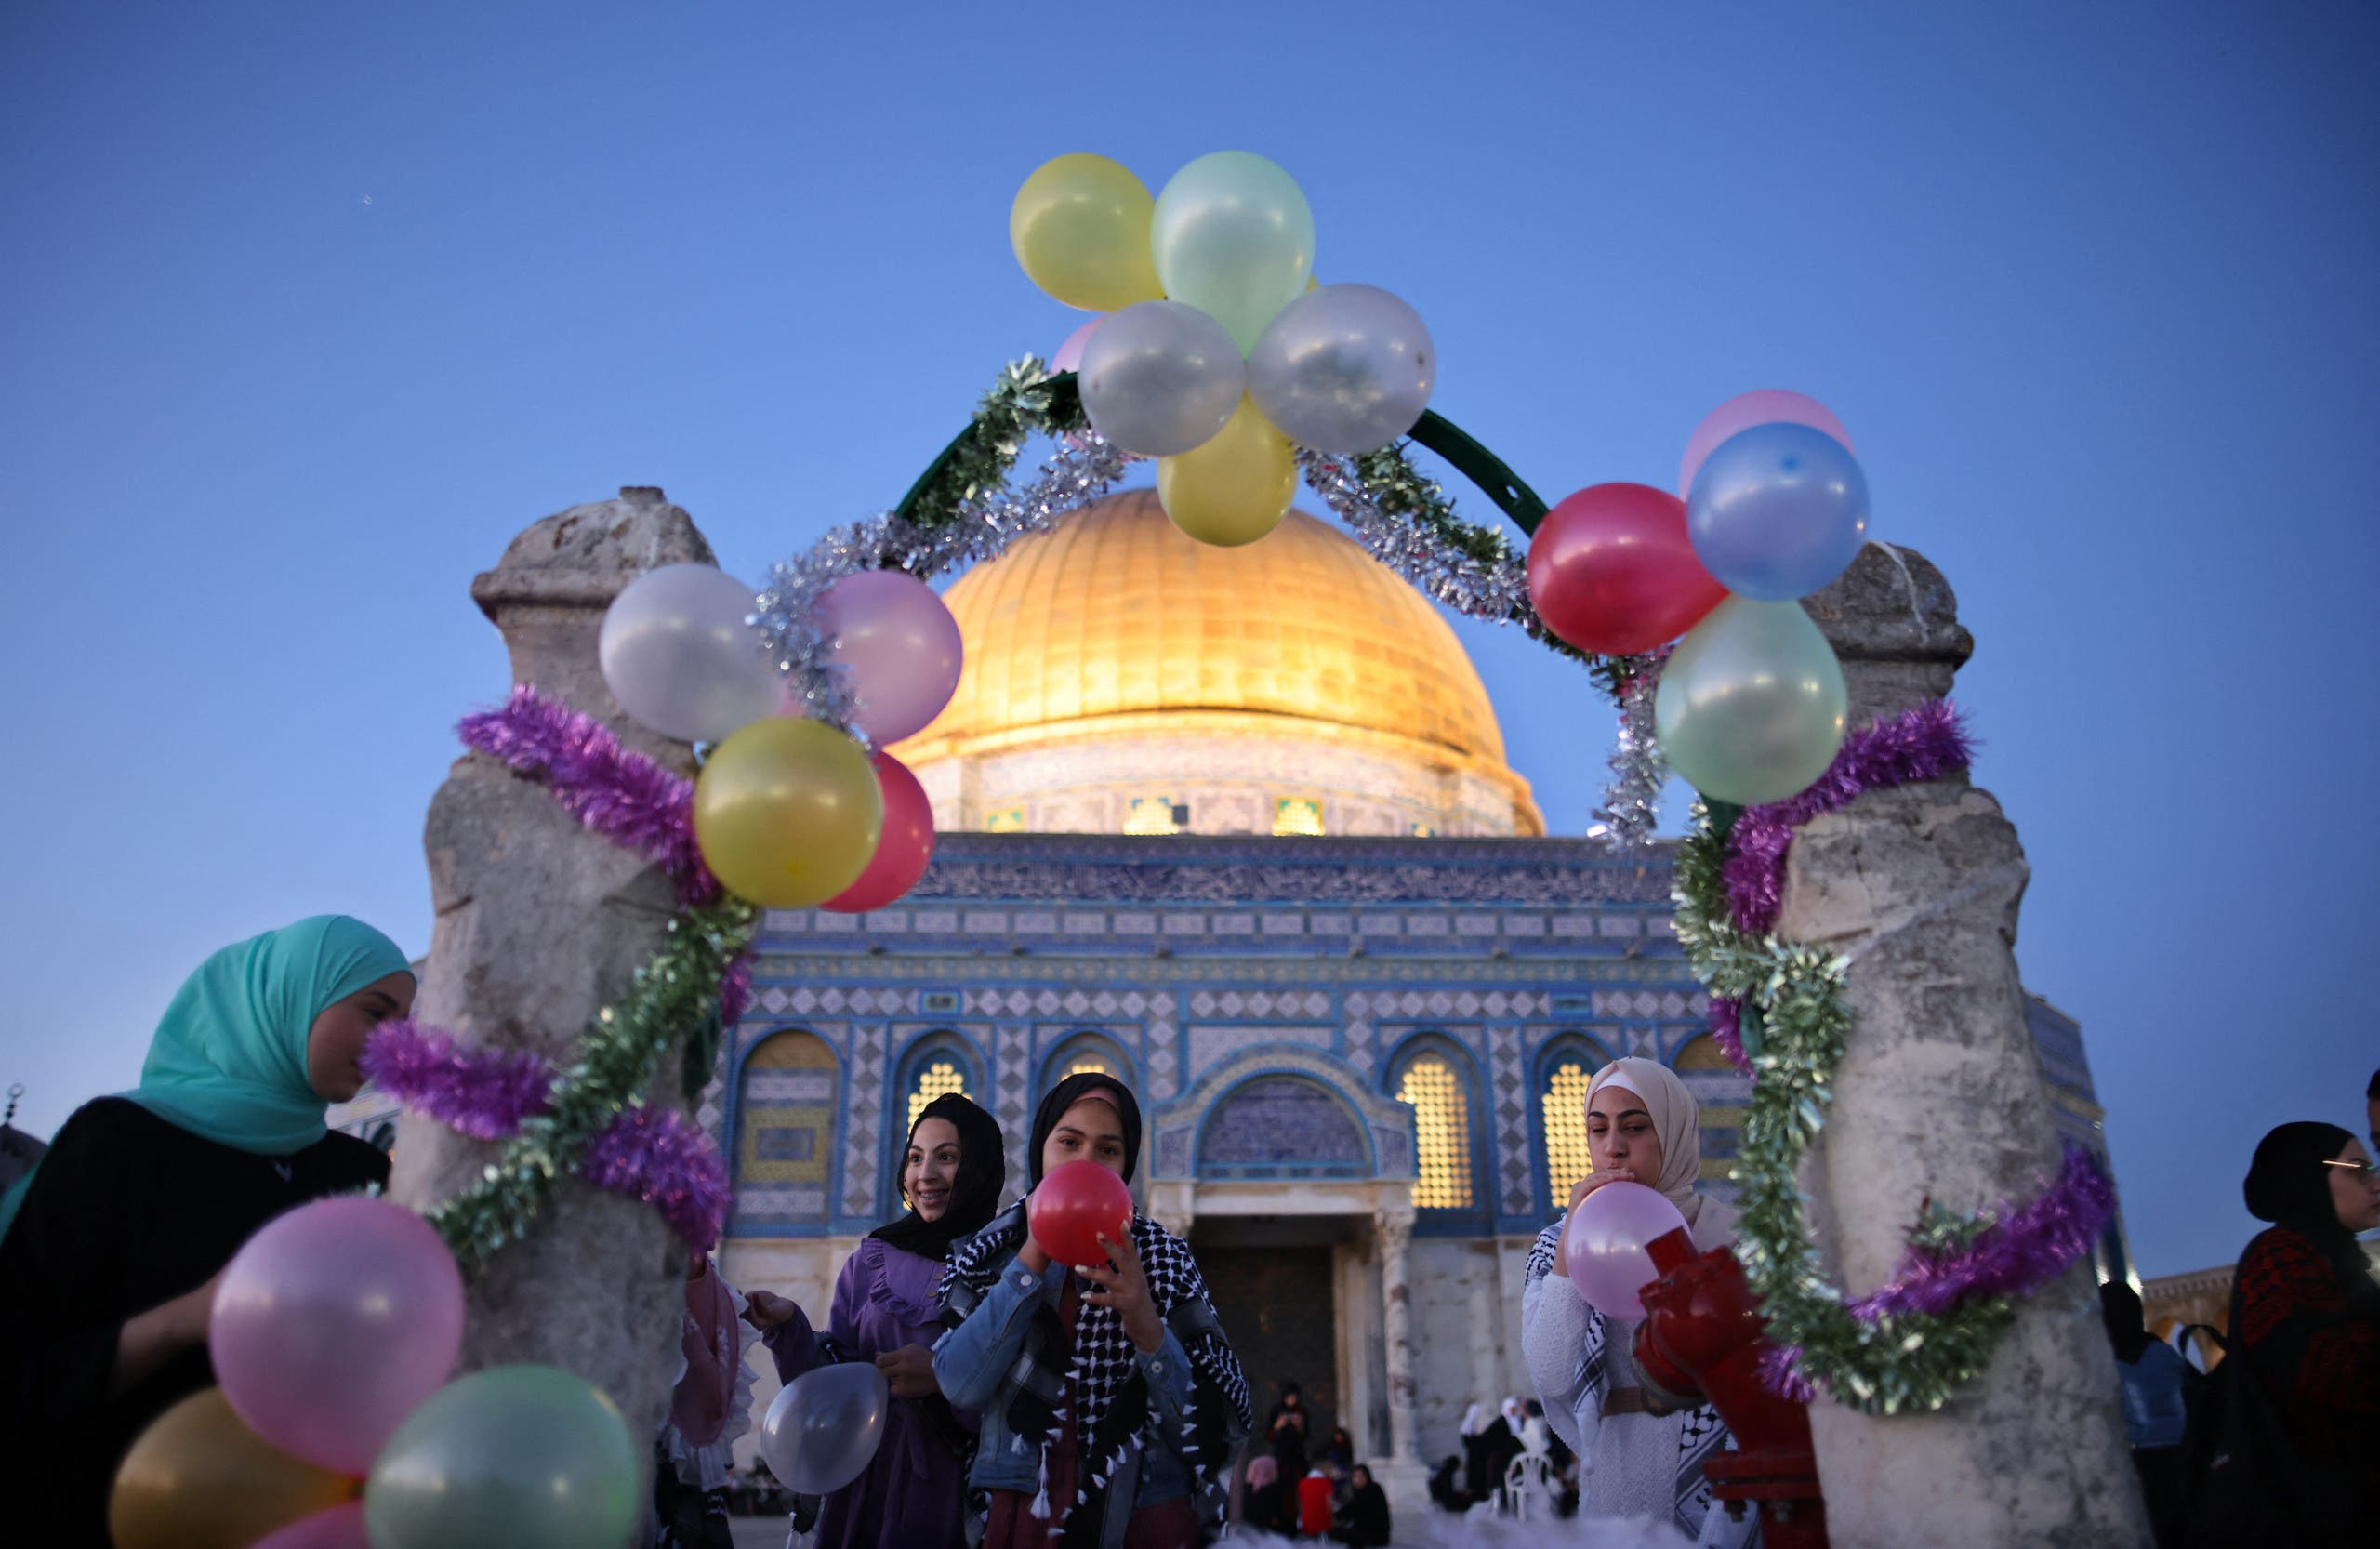 Muslim women blow up balloons as worshippers celebrated the Eid al-Fitr holiday, which marks the end of the holy fasting month of Ramadan, after the morning prayer at the al-Aqsa mosques compound, with the Dome of the Rock mosque in the background, in Old Jerusalem early on May 13, 2021. (AFP)